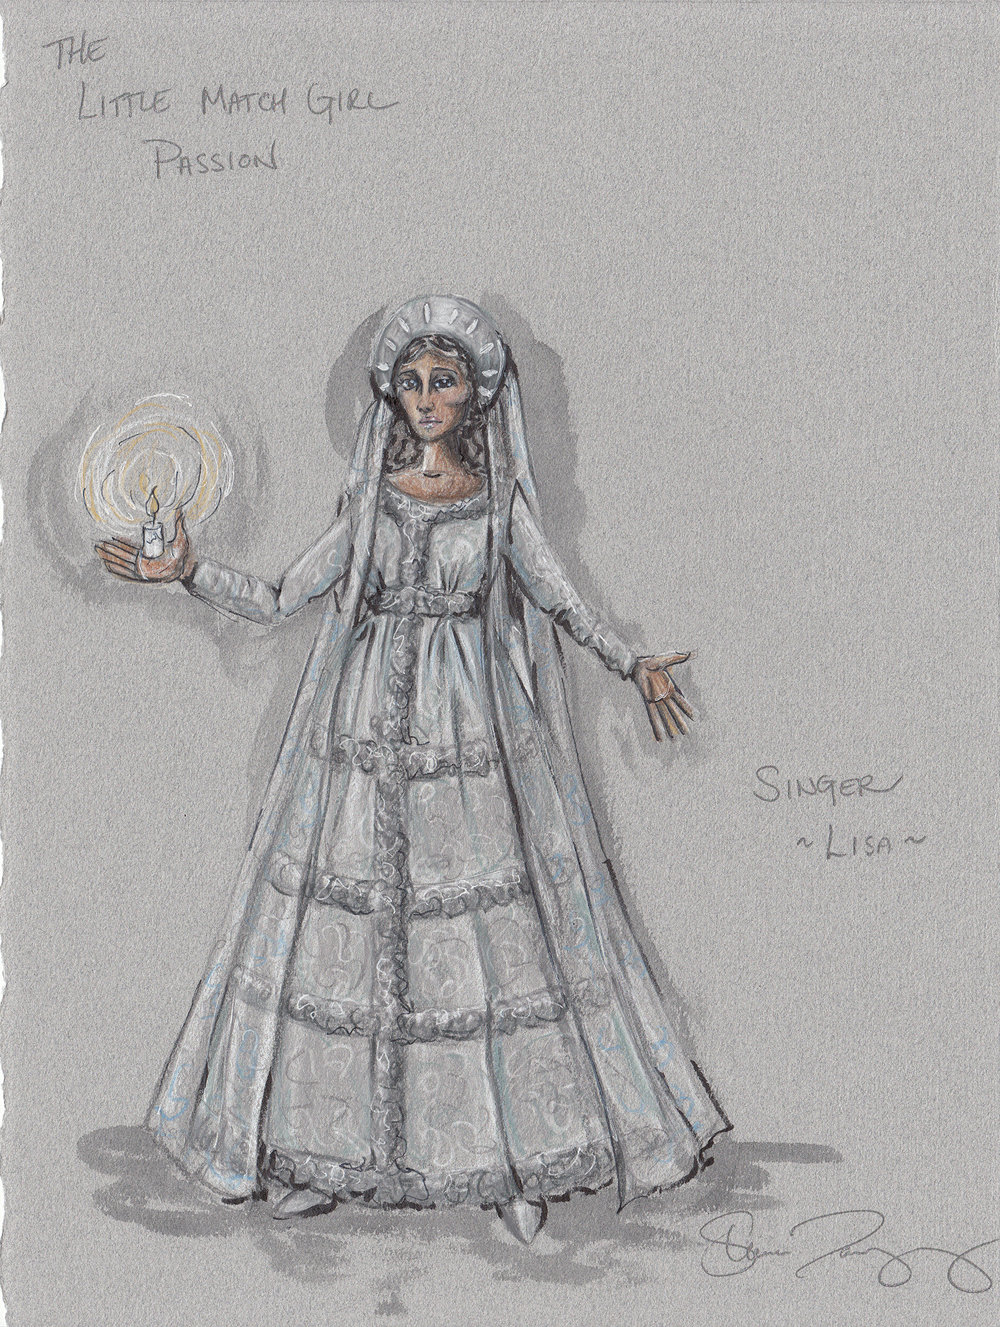 Costume Rendering for The Little Match Girl Passion